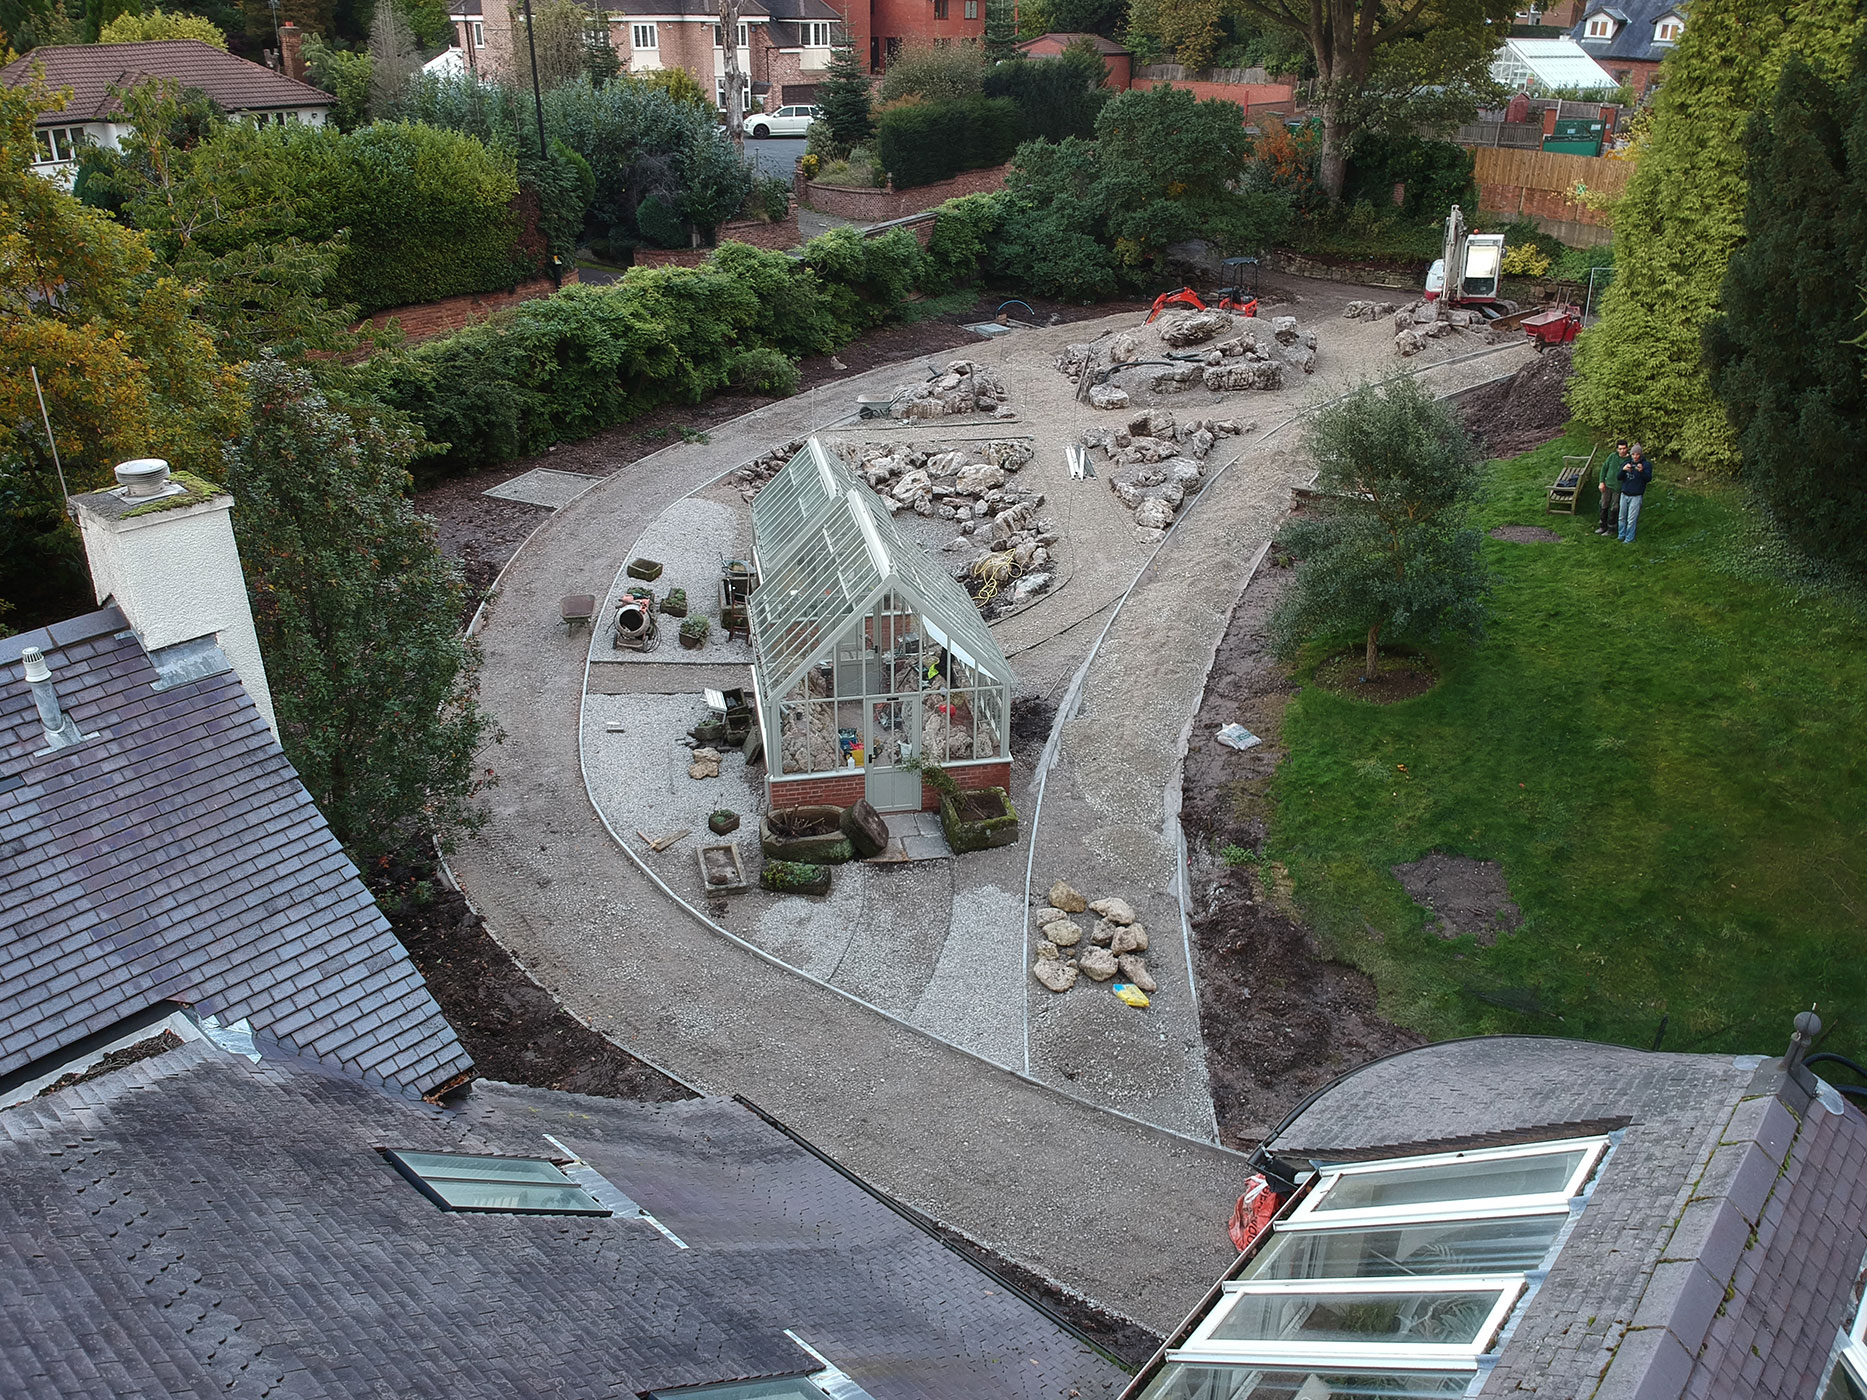 A new glasshouse (internally landscaped with tufa rocks) is constructed.